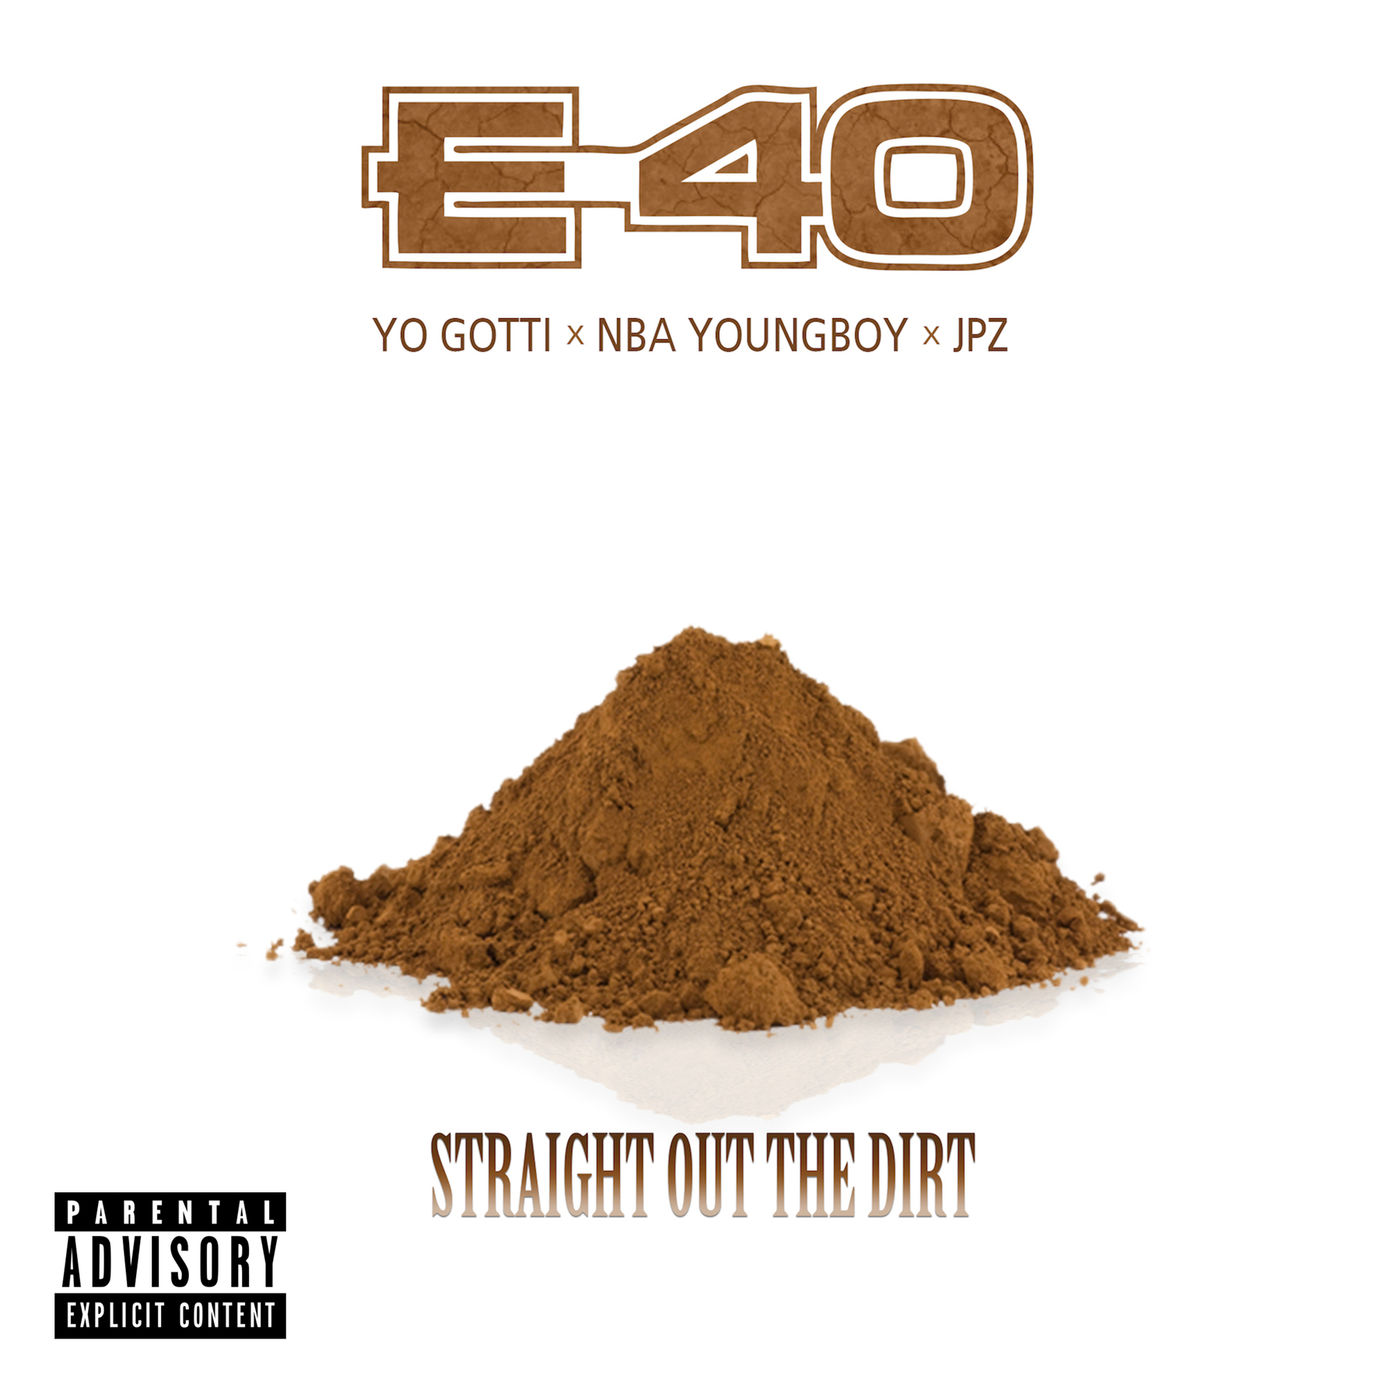 E-40 - Straight Out the Dirt (feat. Yo Gotti & NBA Youngboy) - Single Cover